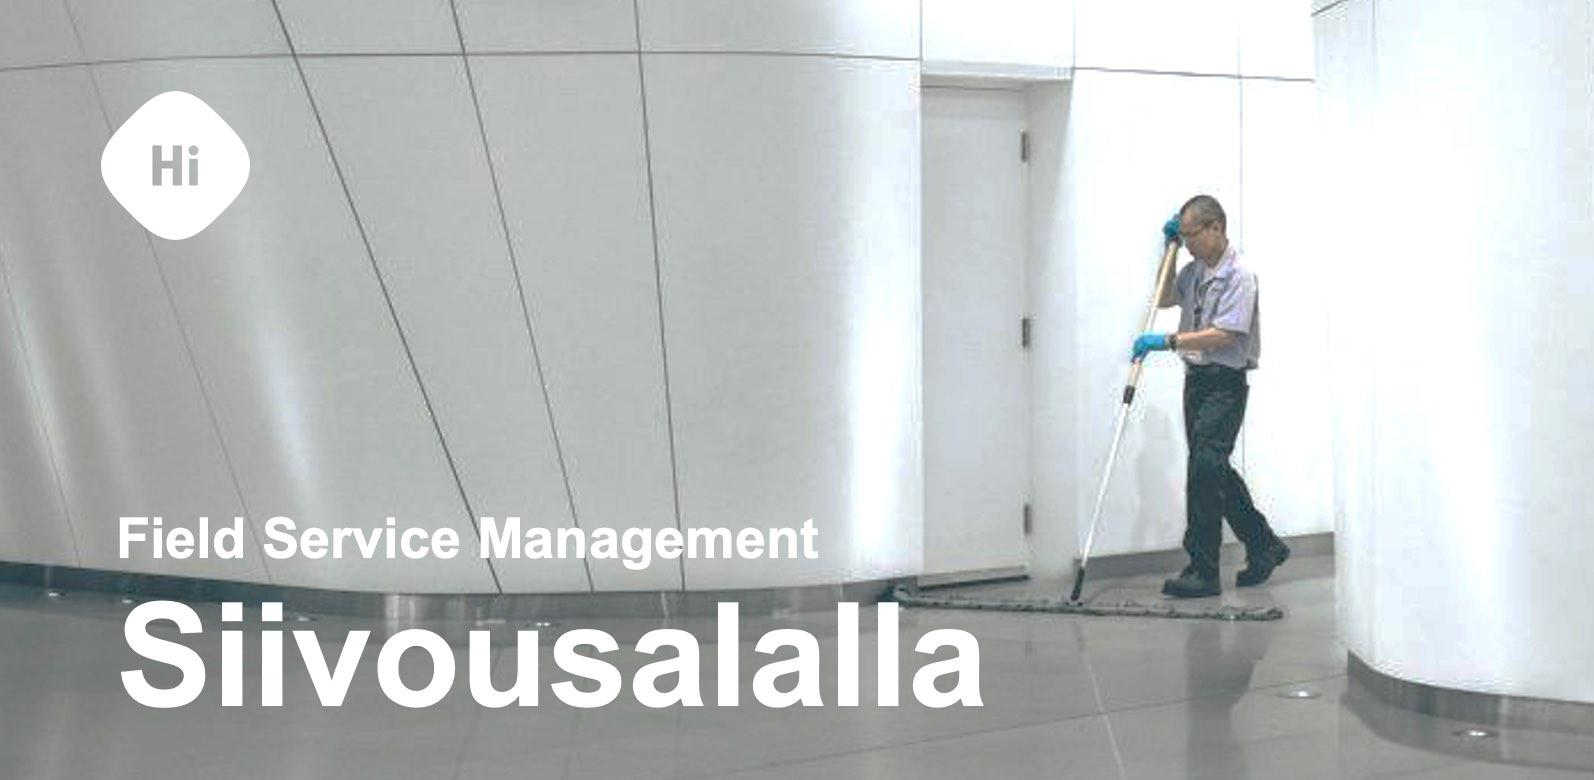 Field Service Management Siivousalalla